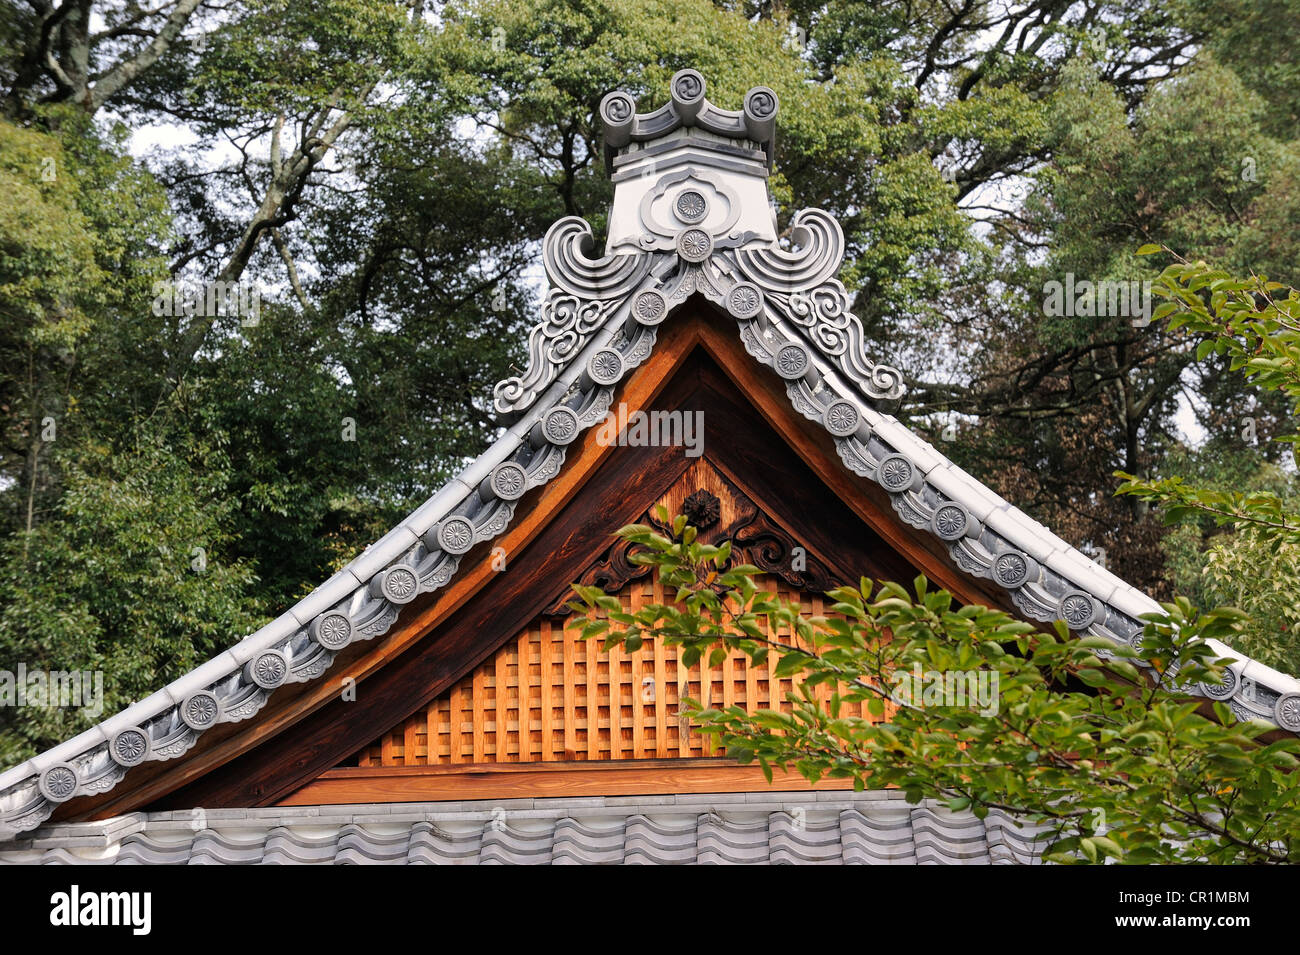 Ridge of the roof with a decorative edge of coping stones on a Shrine roof in Iwakura, near Kyoto, Japan, East Asia, - Stock Image